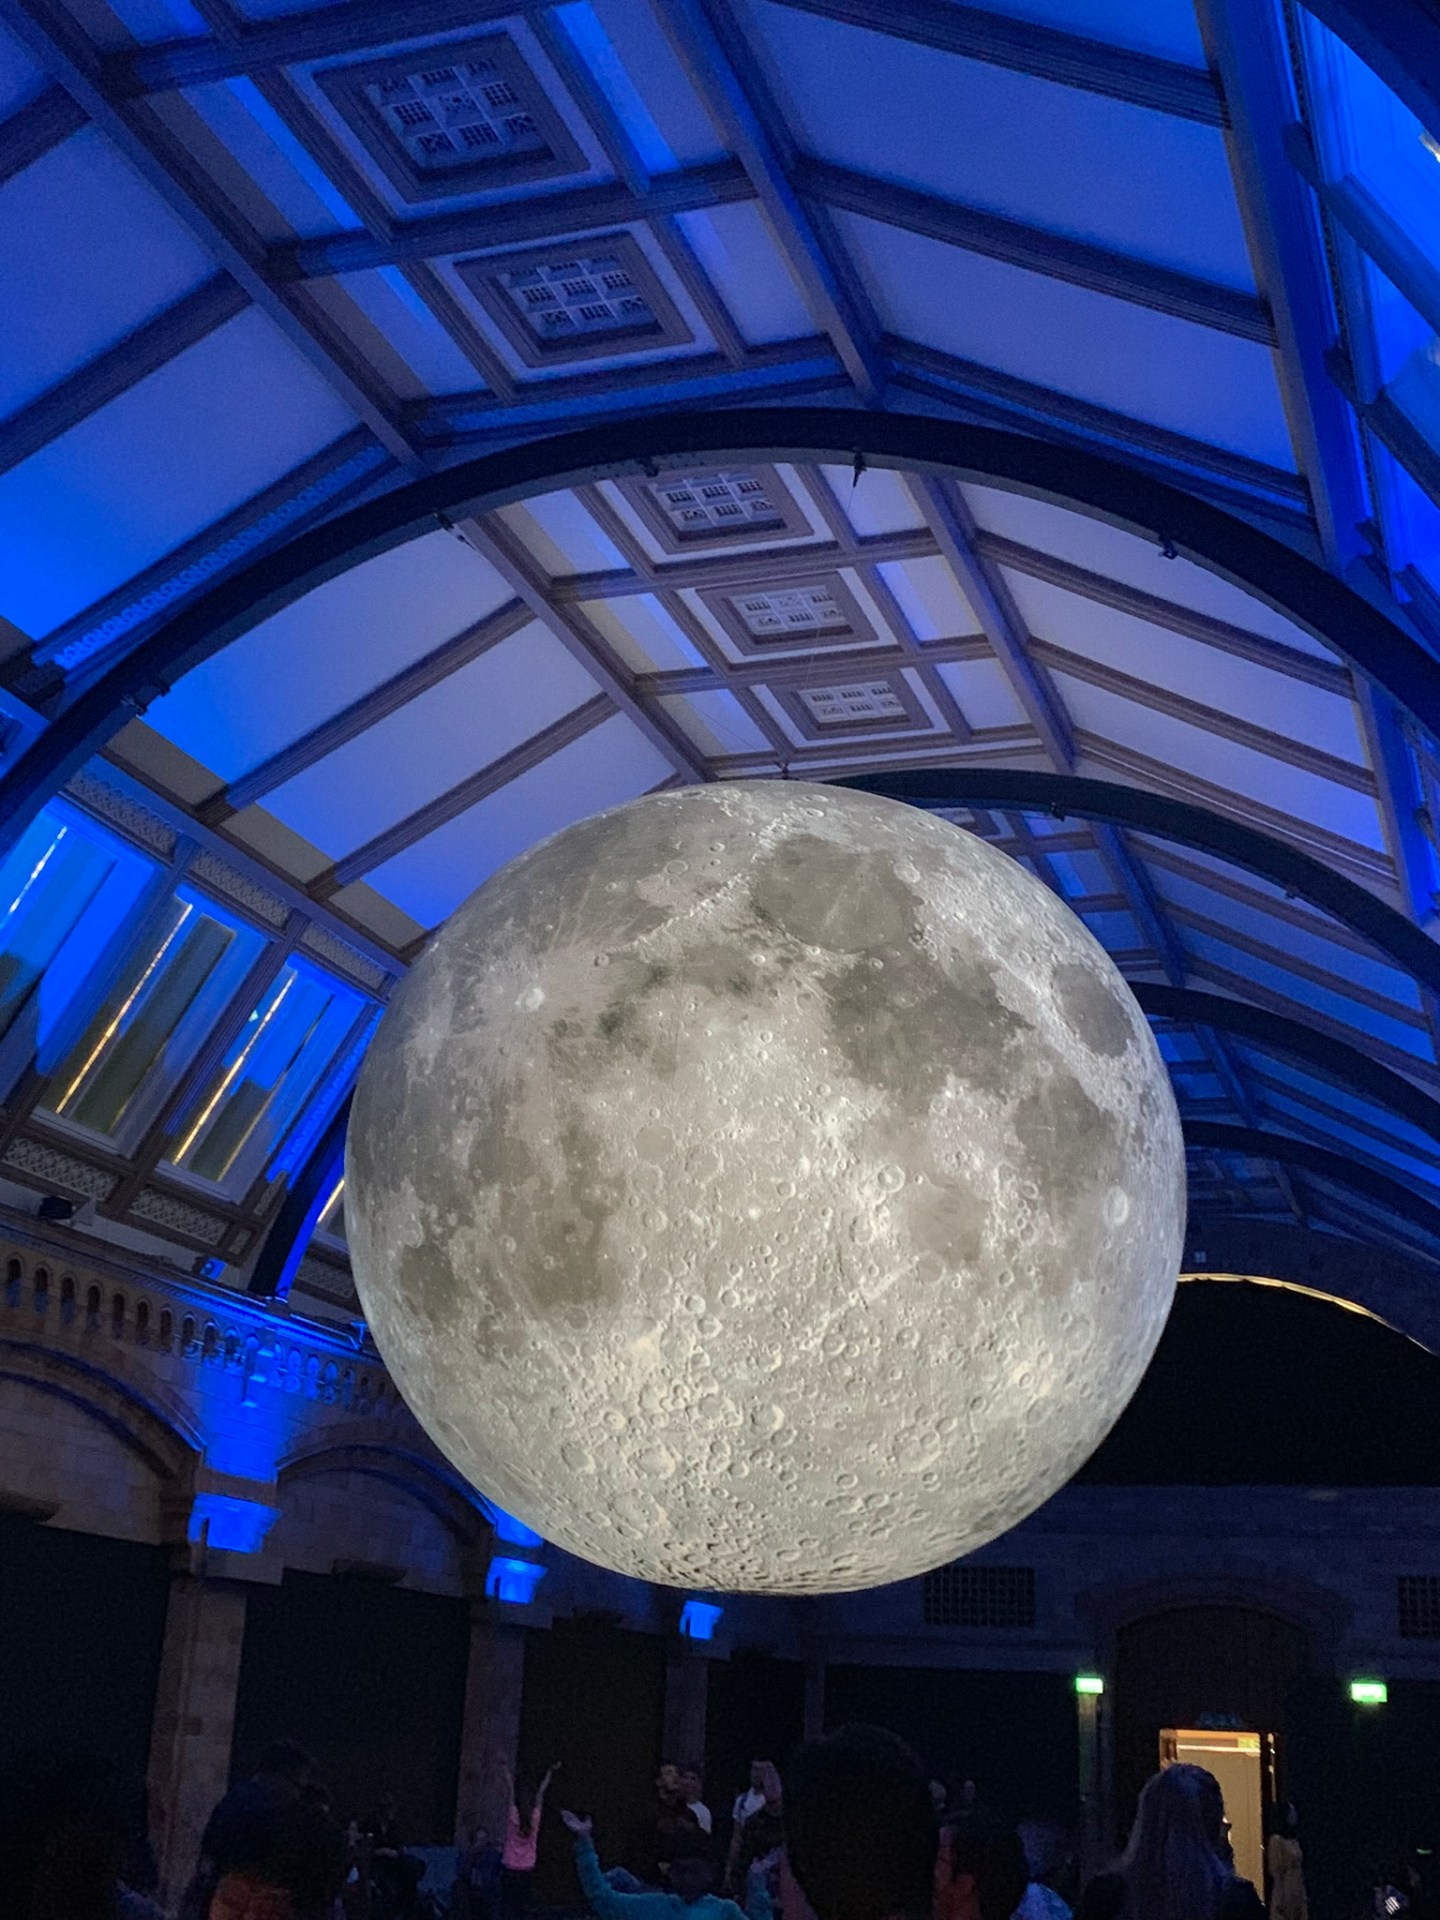 London bucket list: learning about the moon at the Natural History Museum